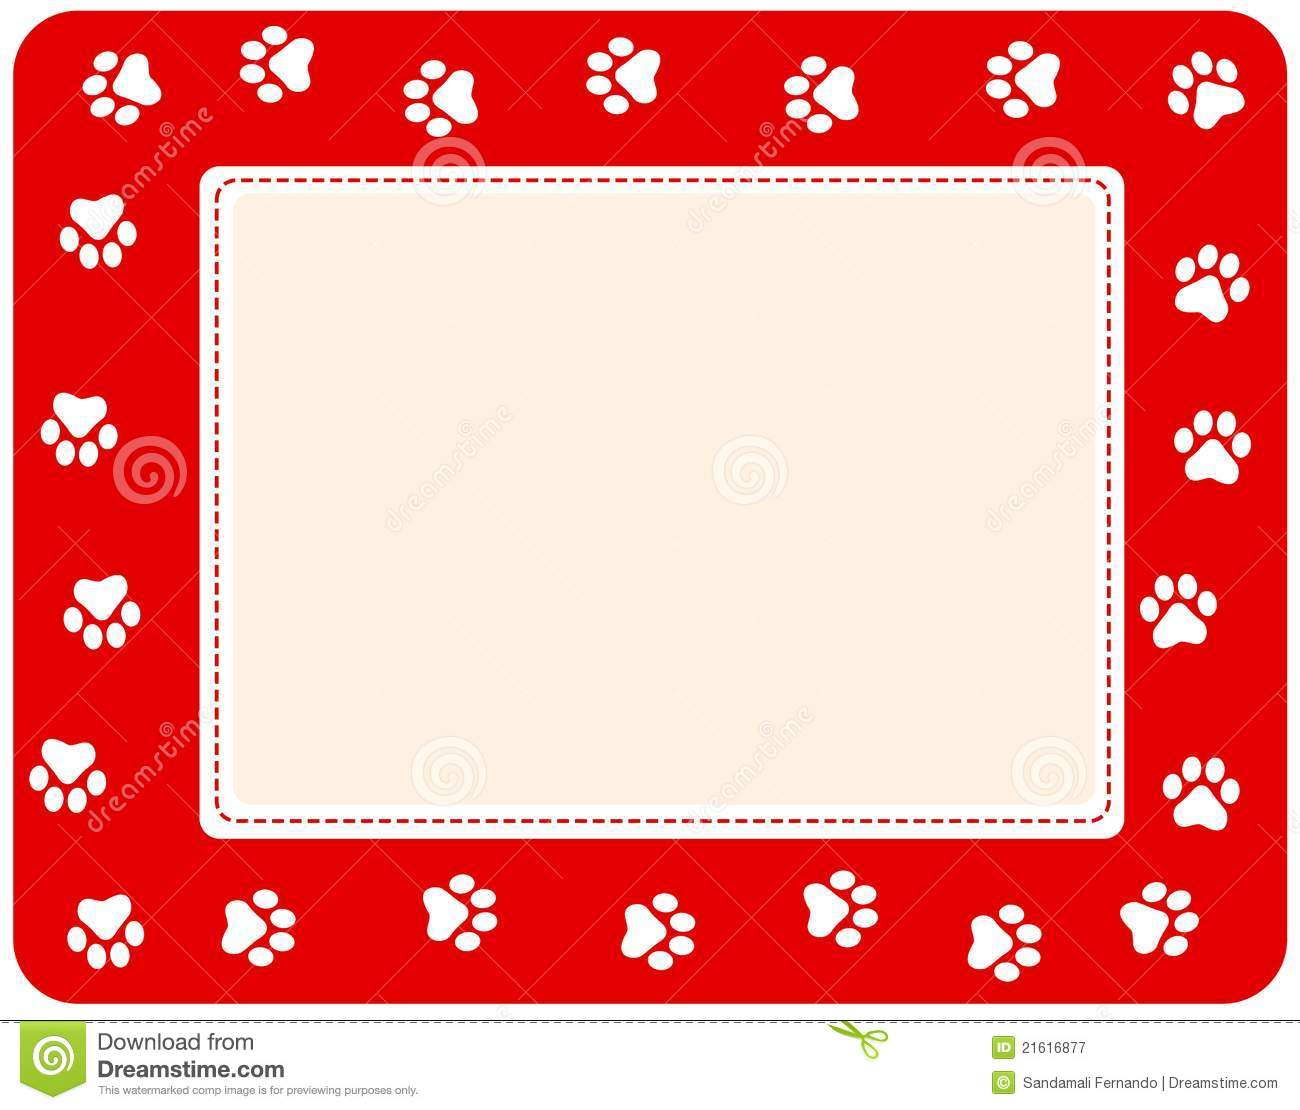 Paw prints border stock vector. Illustration of header.